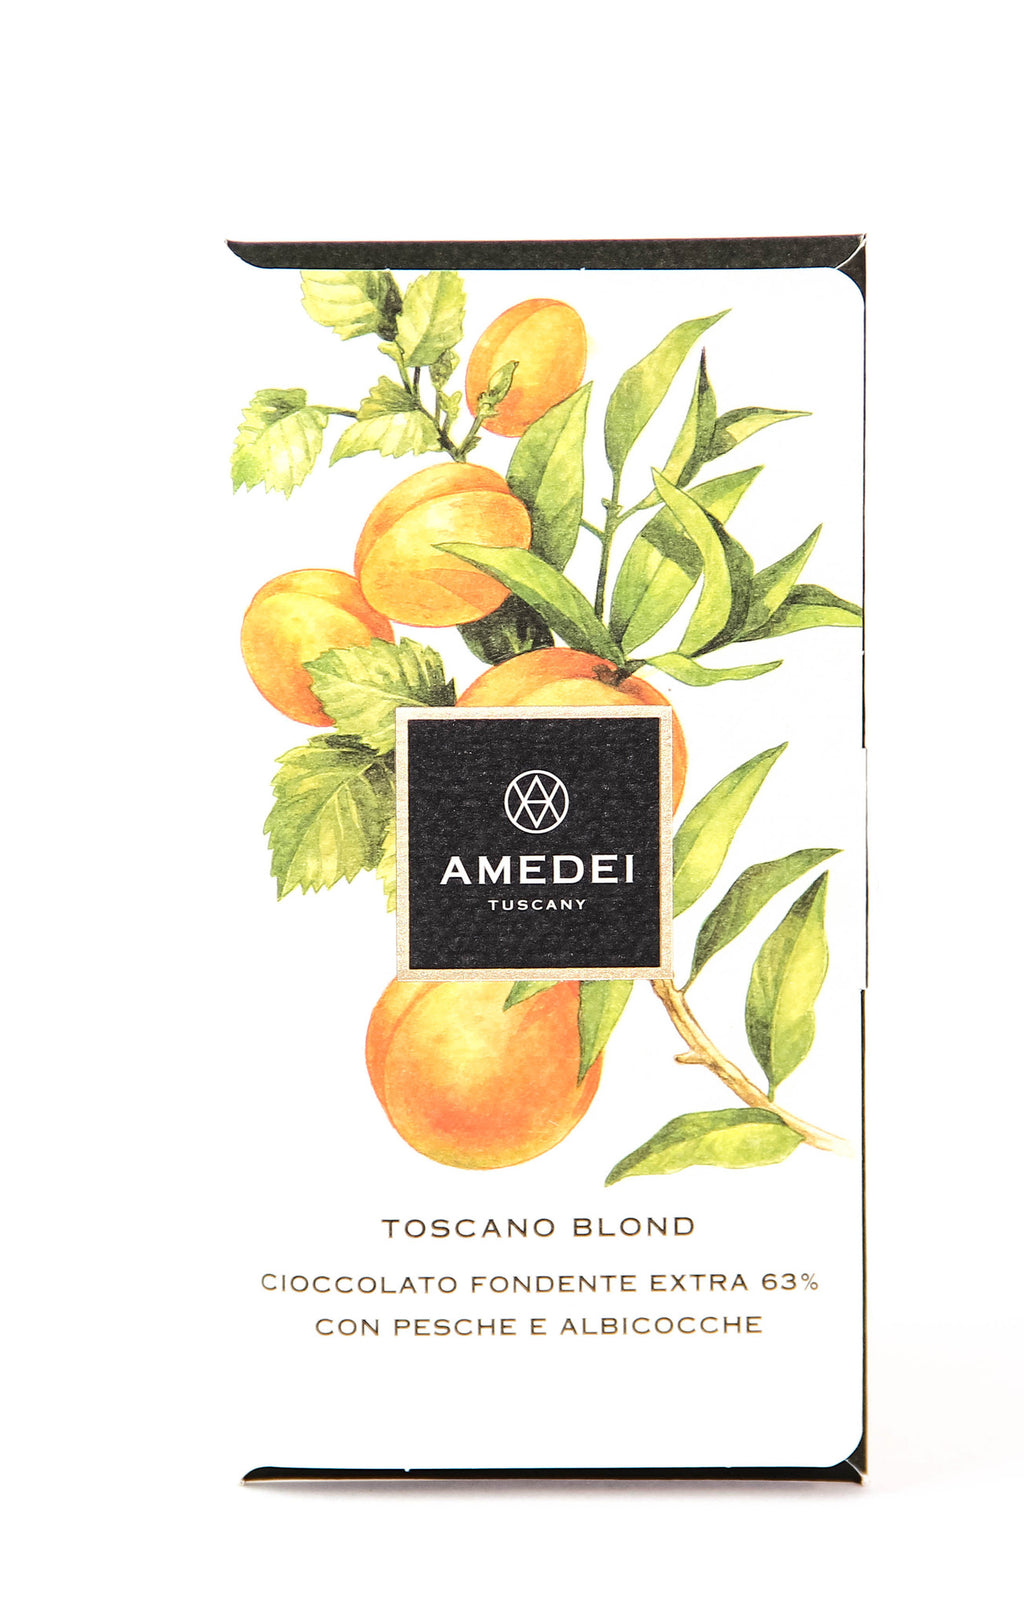 Amedei Toscano Blond 63% Dark Chocolate with Apricots and Peaches-Chocolate-The Meadow